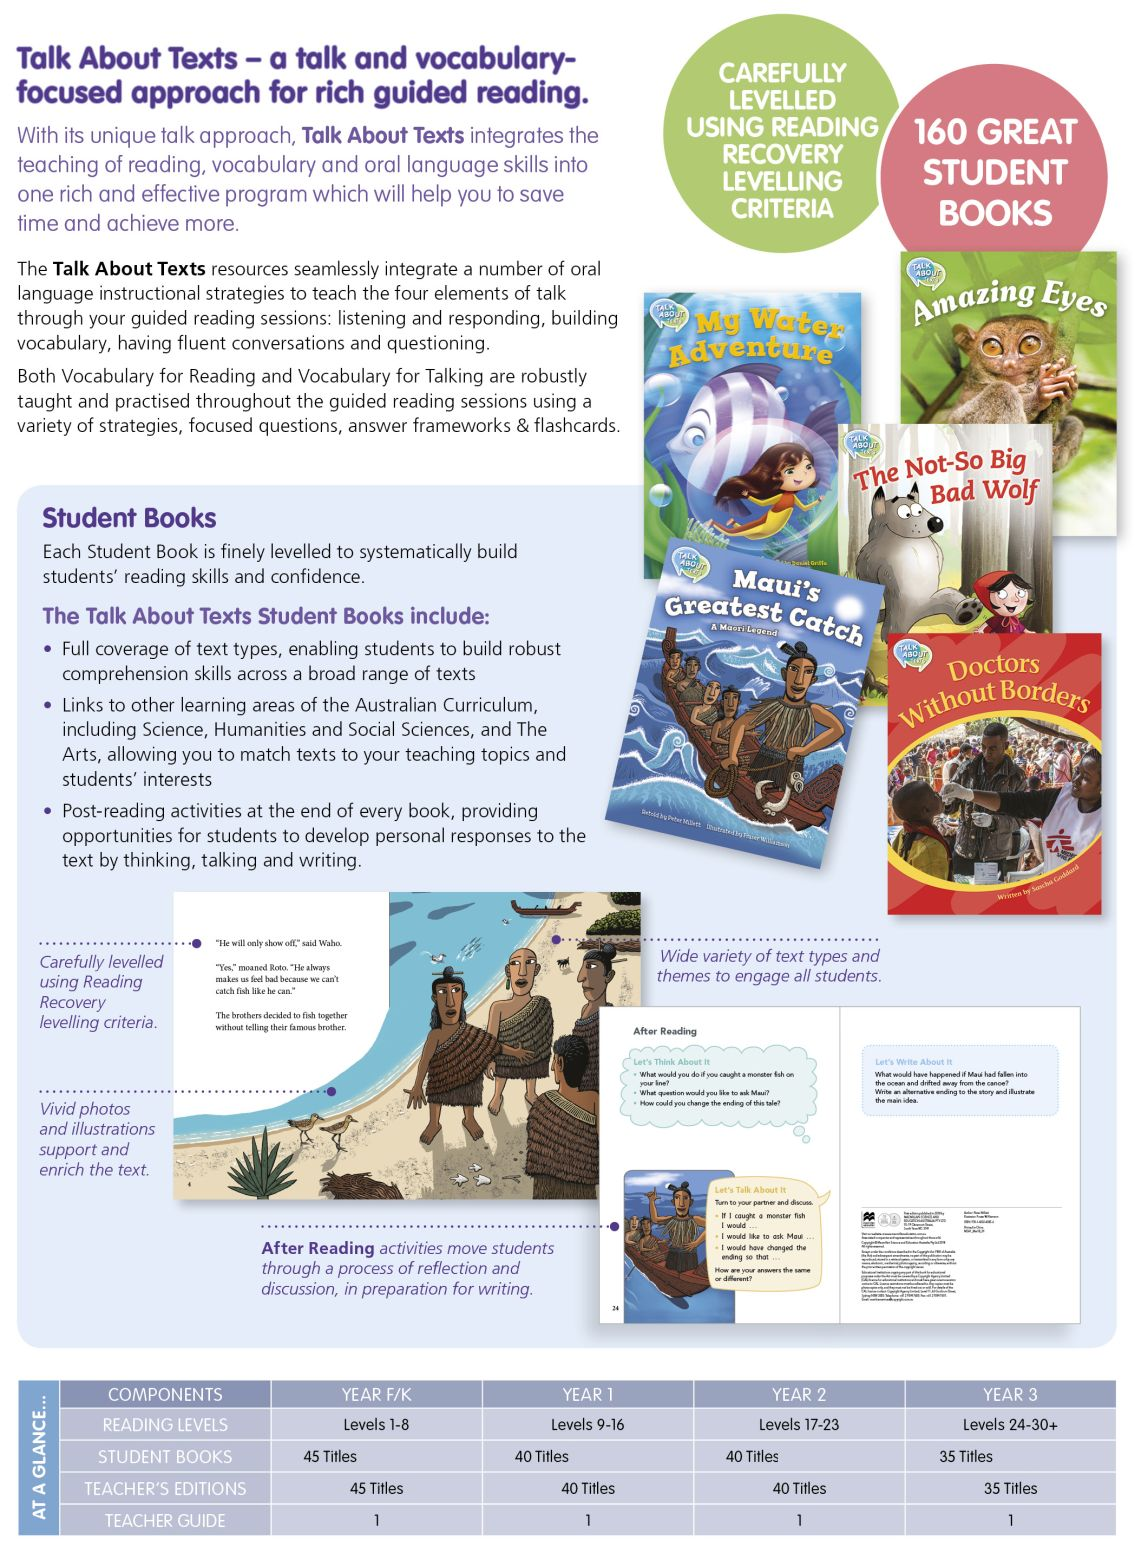 TAT_p56_1142 Talk About Texts  |  Literacy Resources for Primary and Secondary Education | Lioncrest Education